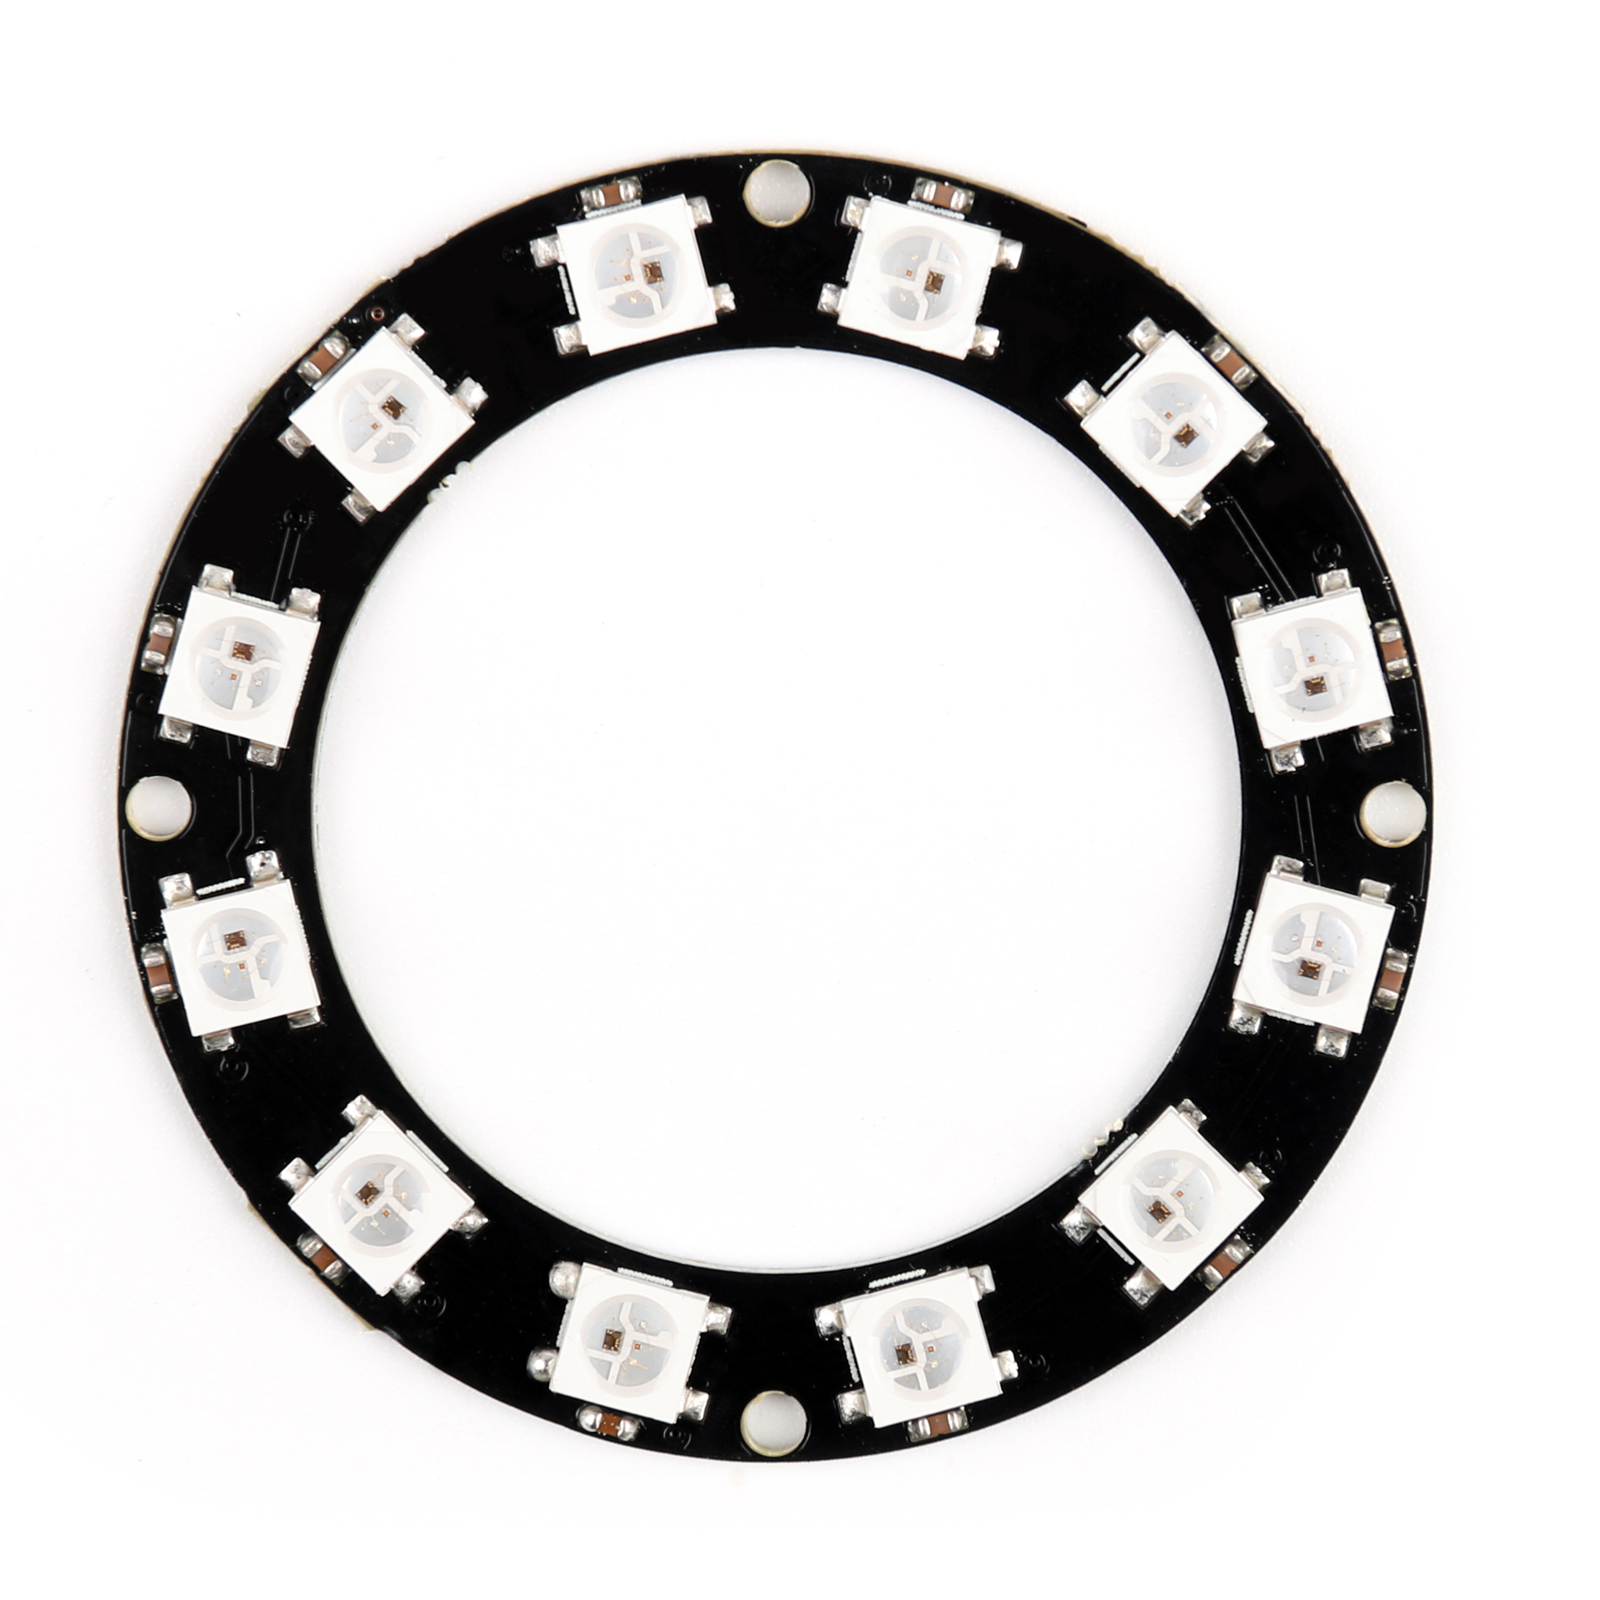 8 12 16 24 Bit Ws Built In Rgb Integrated Drivers Rgb Led Ring Panel